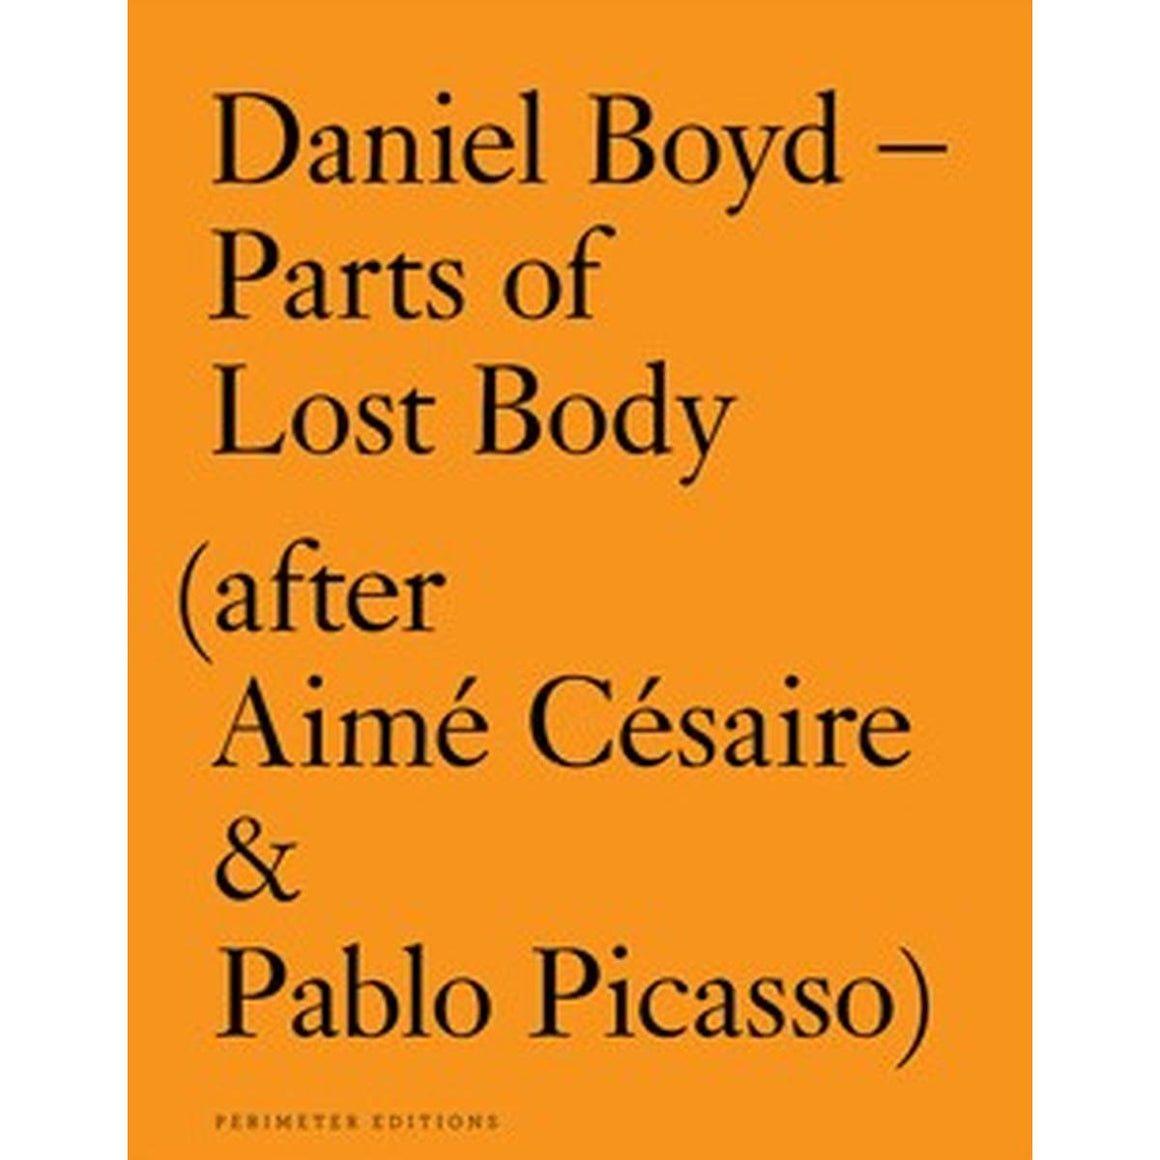 Daniel Boyd - Parts of Lost Body (After Aime Cesaire & Pablo Picasso) | Author: Daniel Boyd